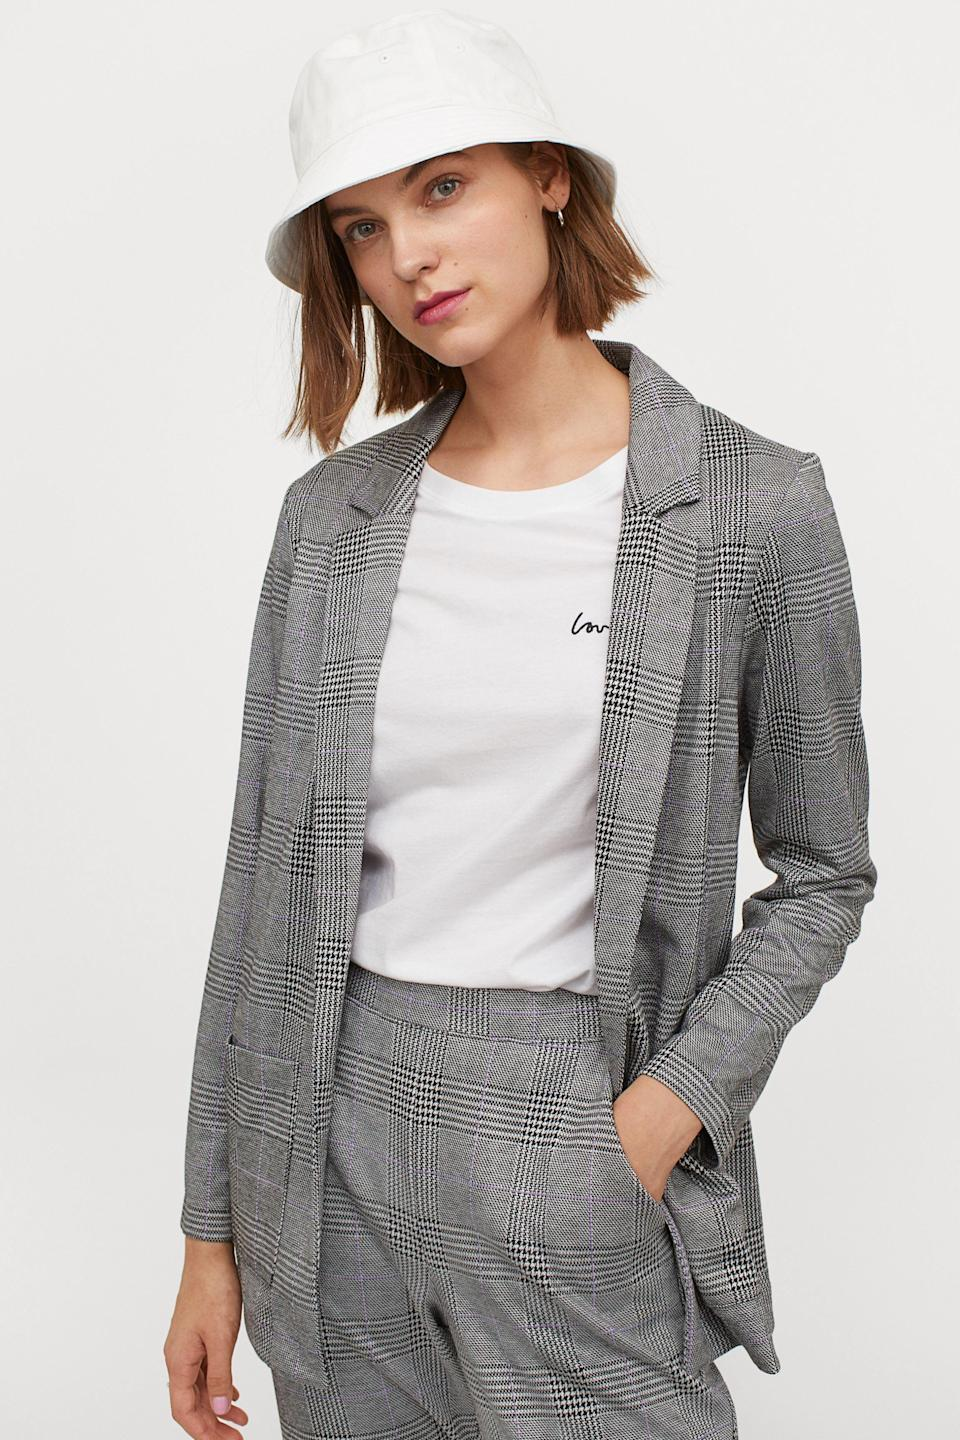 """<p><strong>H&M</strong></p><p>hm.com</p><p><strong>$34.99</strong></p><p><a href=""""https://go.redirectingat.com?id=74968X1596630&url=https%3A%2F%2Fwww2.hm.com%2Fen_us%2Fproductpage.0854602009.html&sref=https%3A%2F%2Fwww.goodhousekeeping.com%2Fclothing%2Fg33473194%2Ftransitional-clothing-summer-to-fall%2F"""" rel=""""nofollow noopener"""" target=""""_blank"""" data-ylk=""""slk:Shop Now"""" class=""""link rapid-noclick-resp"""">Shop Now</a></p><p>A blazer-style jersey jacket is a great way to add some sophistication and style to any look — not to mention it's the perfect solution for when it's getting a little nippy outside, but it's not quite time to bust out those heavy fall jackets and coats. </p>"""